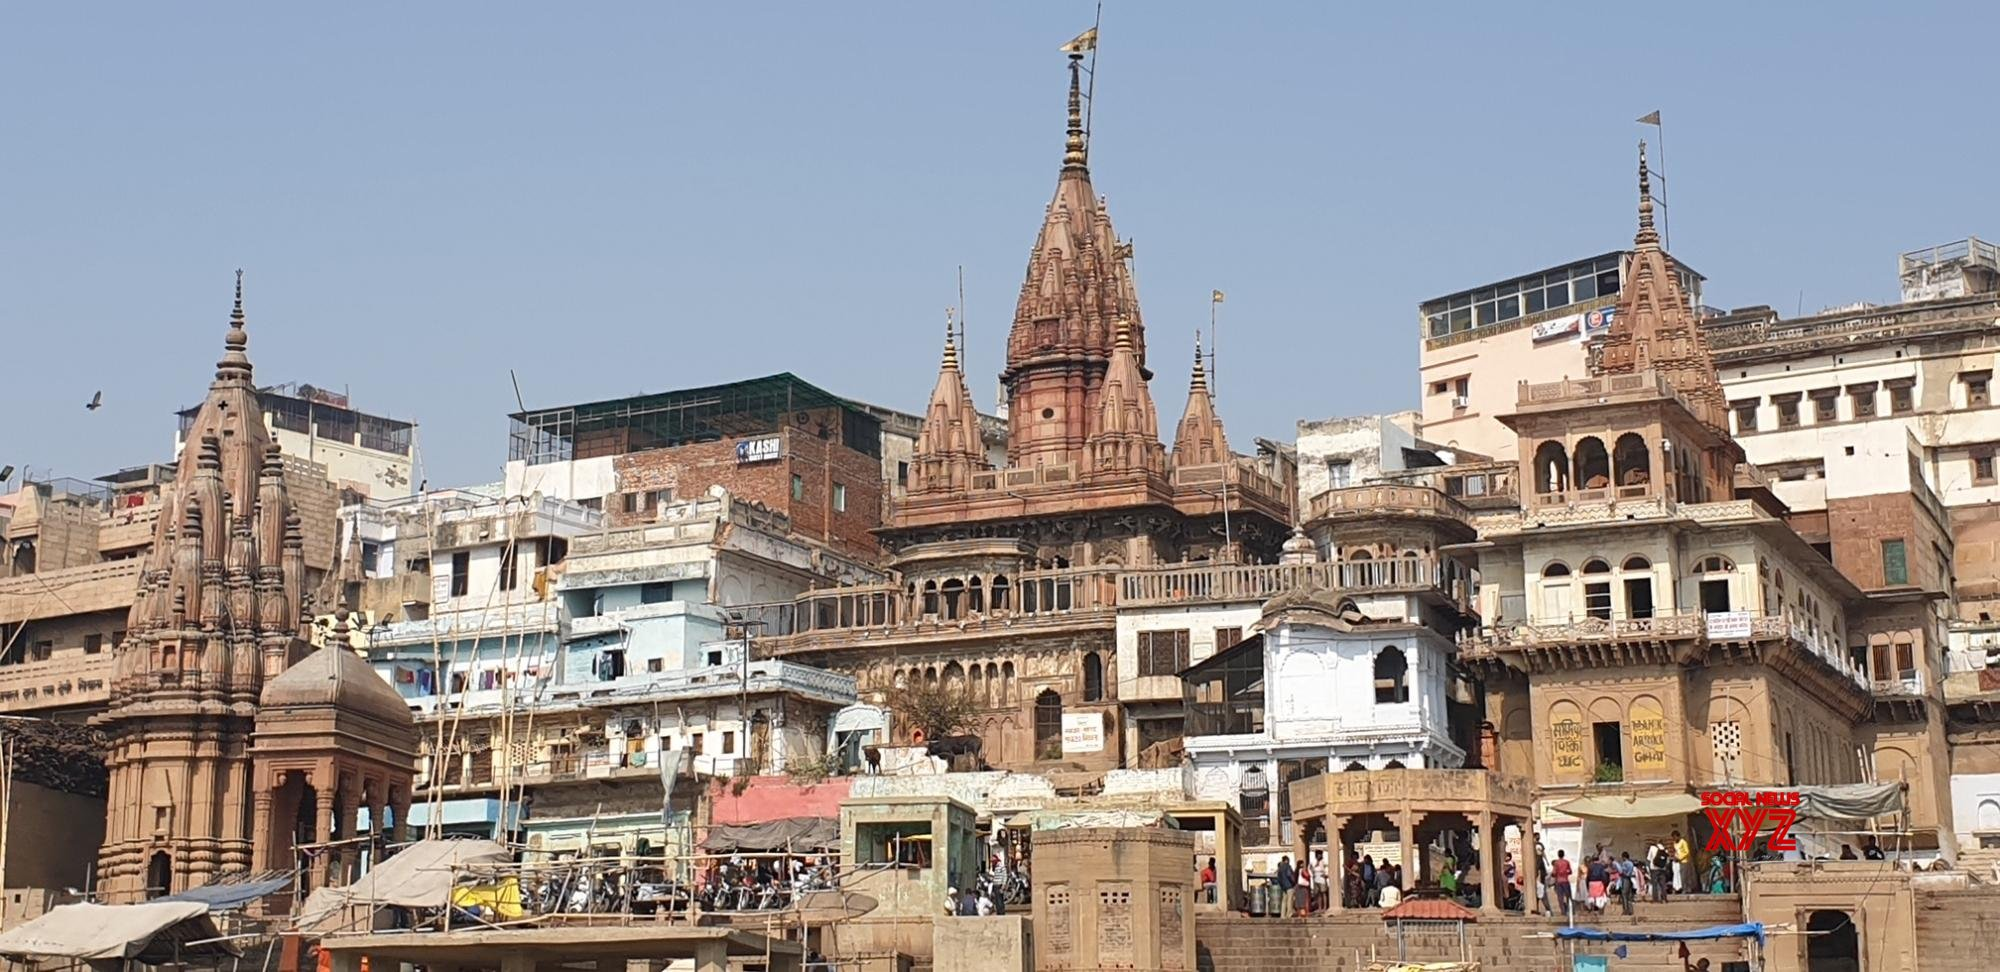 Varanasi to have ropeways to ease road congestion